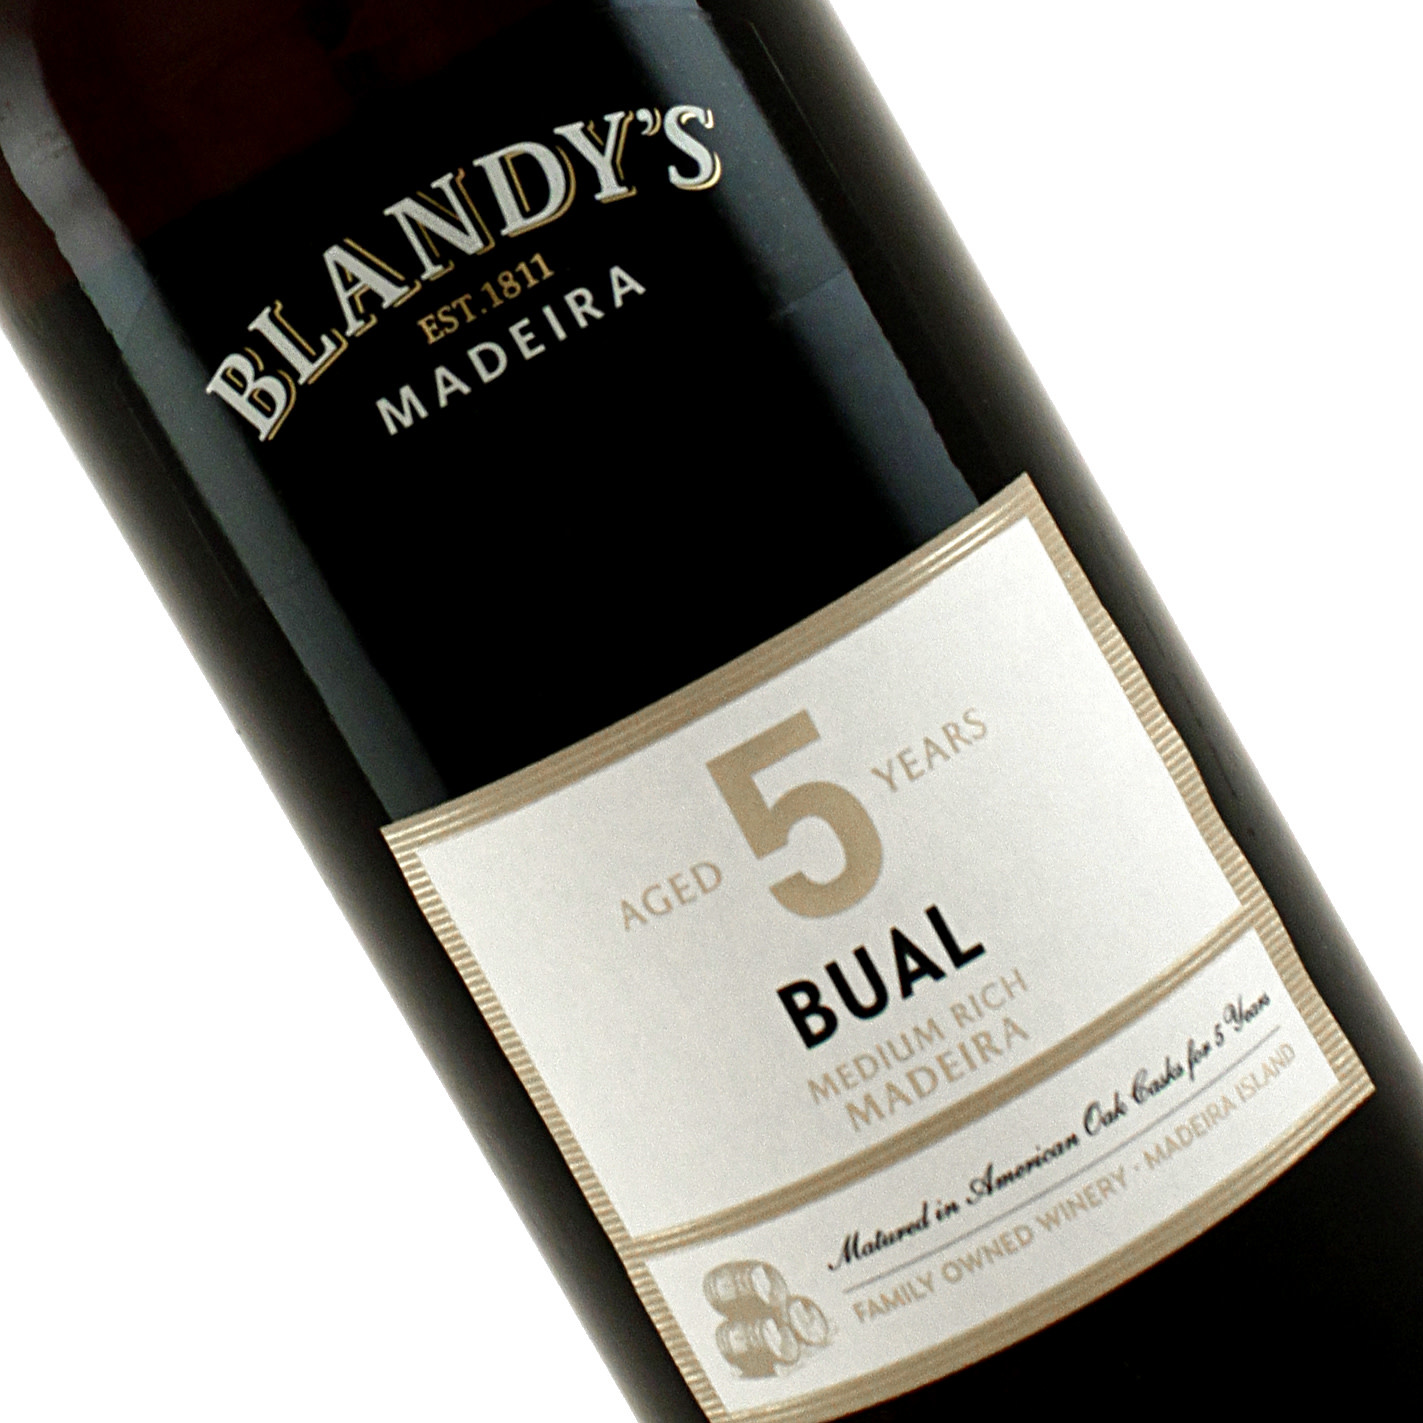 Blandy's 5 Year Old Bual Madeira, Portugal